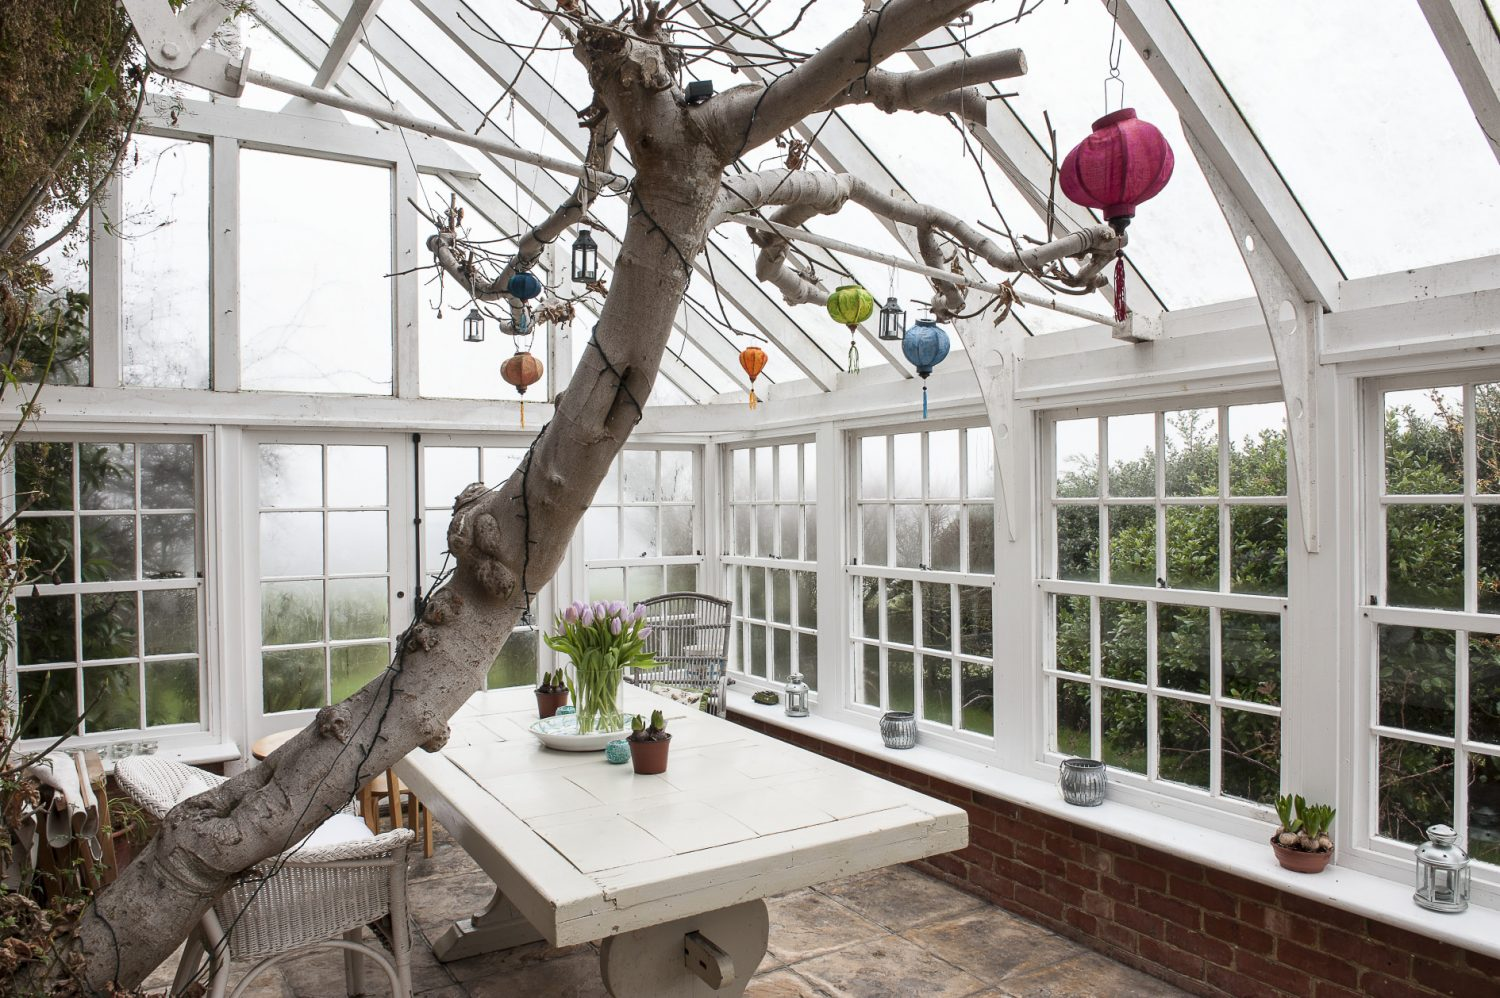 French doors in the kitchen lead out into a truly stunning orangery with flagstone flooring, an ancient fig festooned with Vietnamese paper lanterns growing up the centre and jasmine climbing the walls